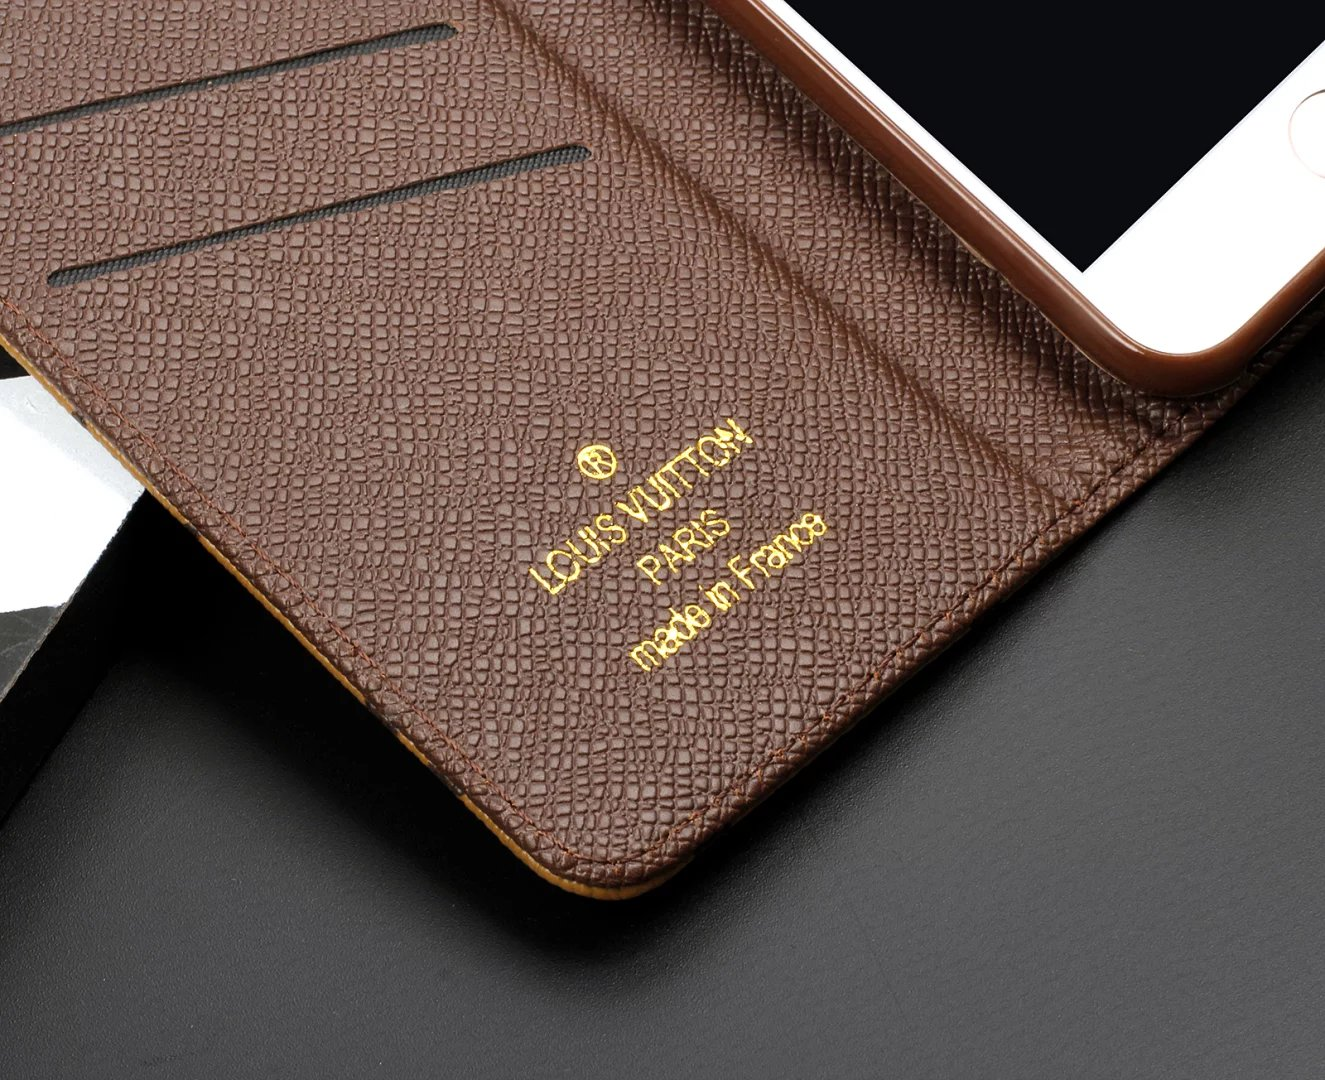 iphone 8 Plus cases on sale iphone 8 Plus case Louis Vuitton iphone 8 Plus case phone cover creator sell phone cases iPhone 8 Plusa cases mobile phone covers store official iPhone 8 Plus case iphone charging case mophie